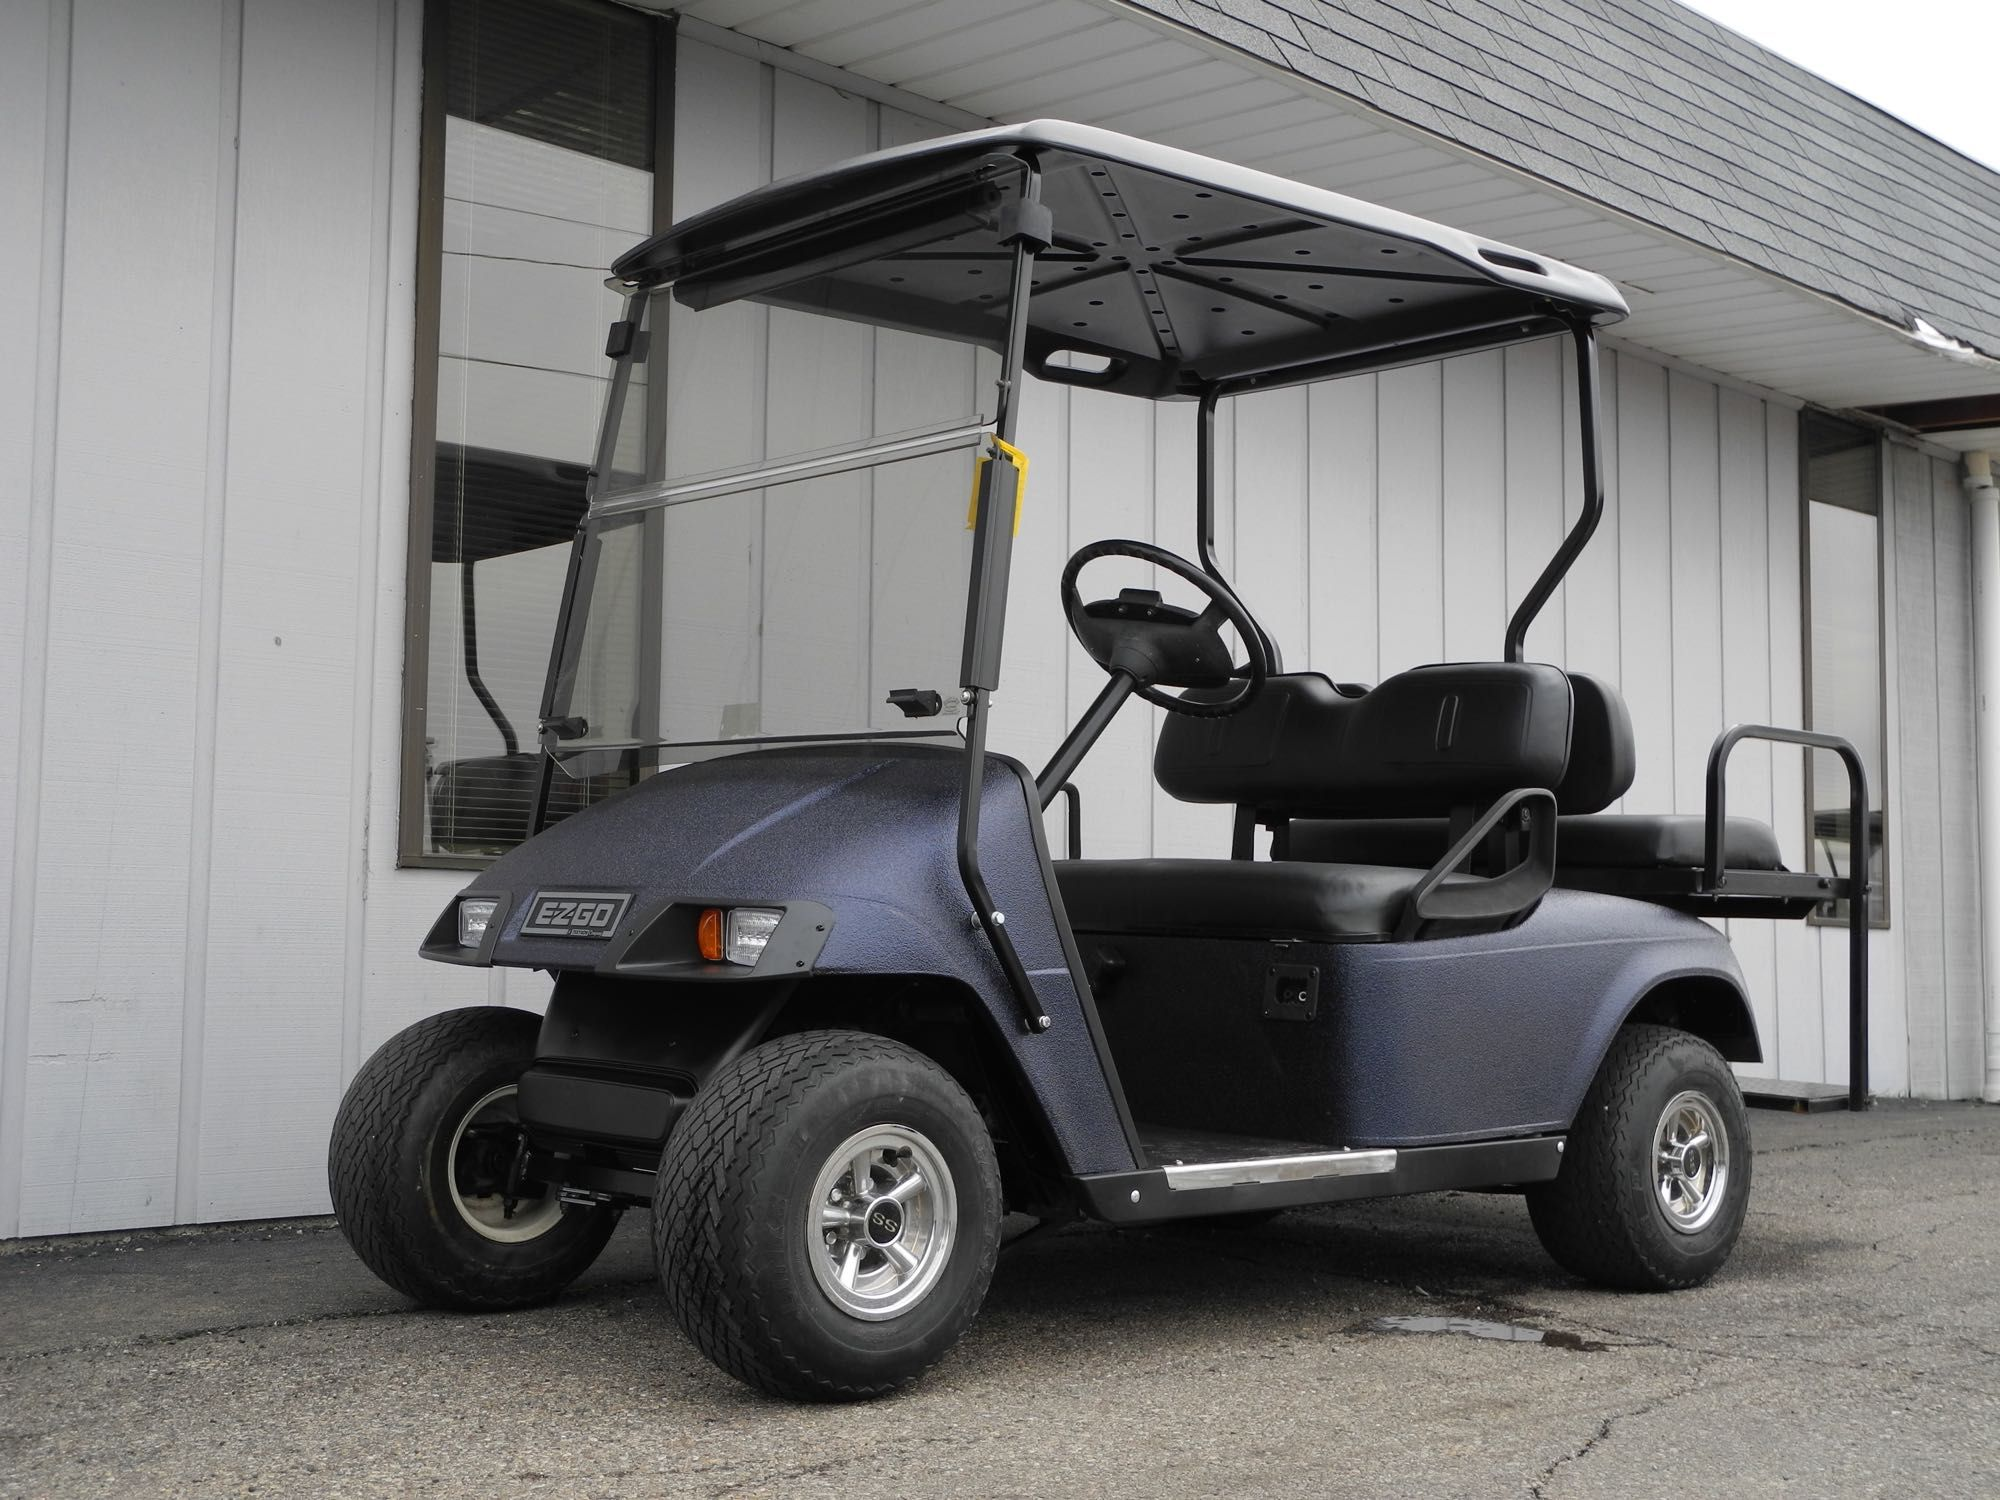 This 1999 E Z Go Dcs Electric Custom Golf Car Is An Older Model But It Has Been Stripped Down To The Frame And Co Used Golf Carts Golf Car Golf Cart Batteries